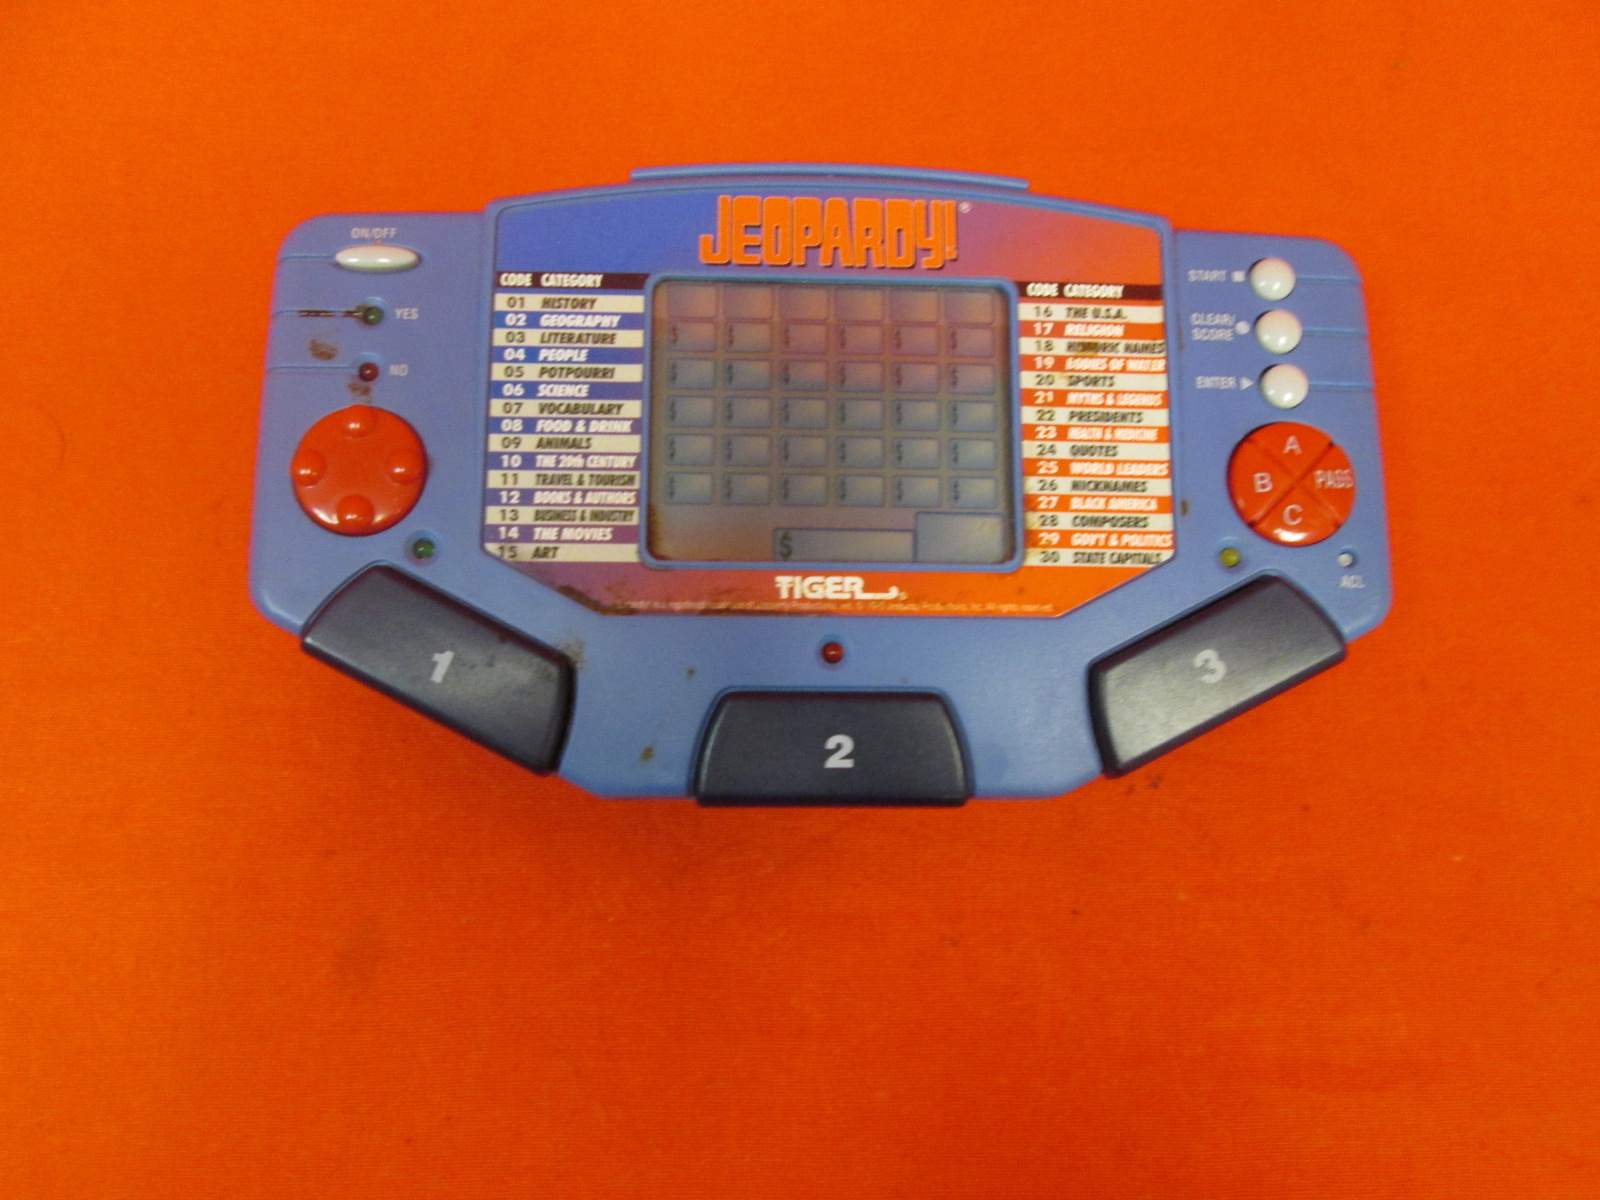 Broken Tiger Jeopardy Handheld Electronic Arcade Game Incomplete